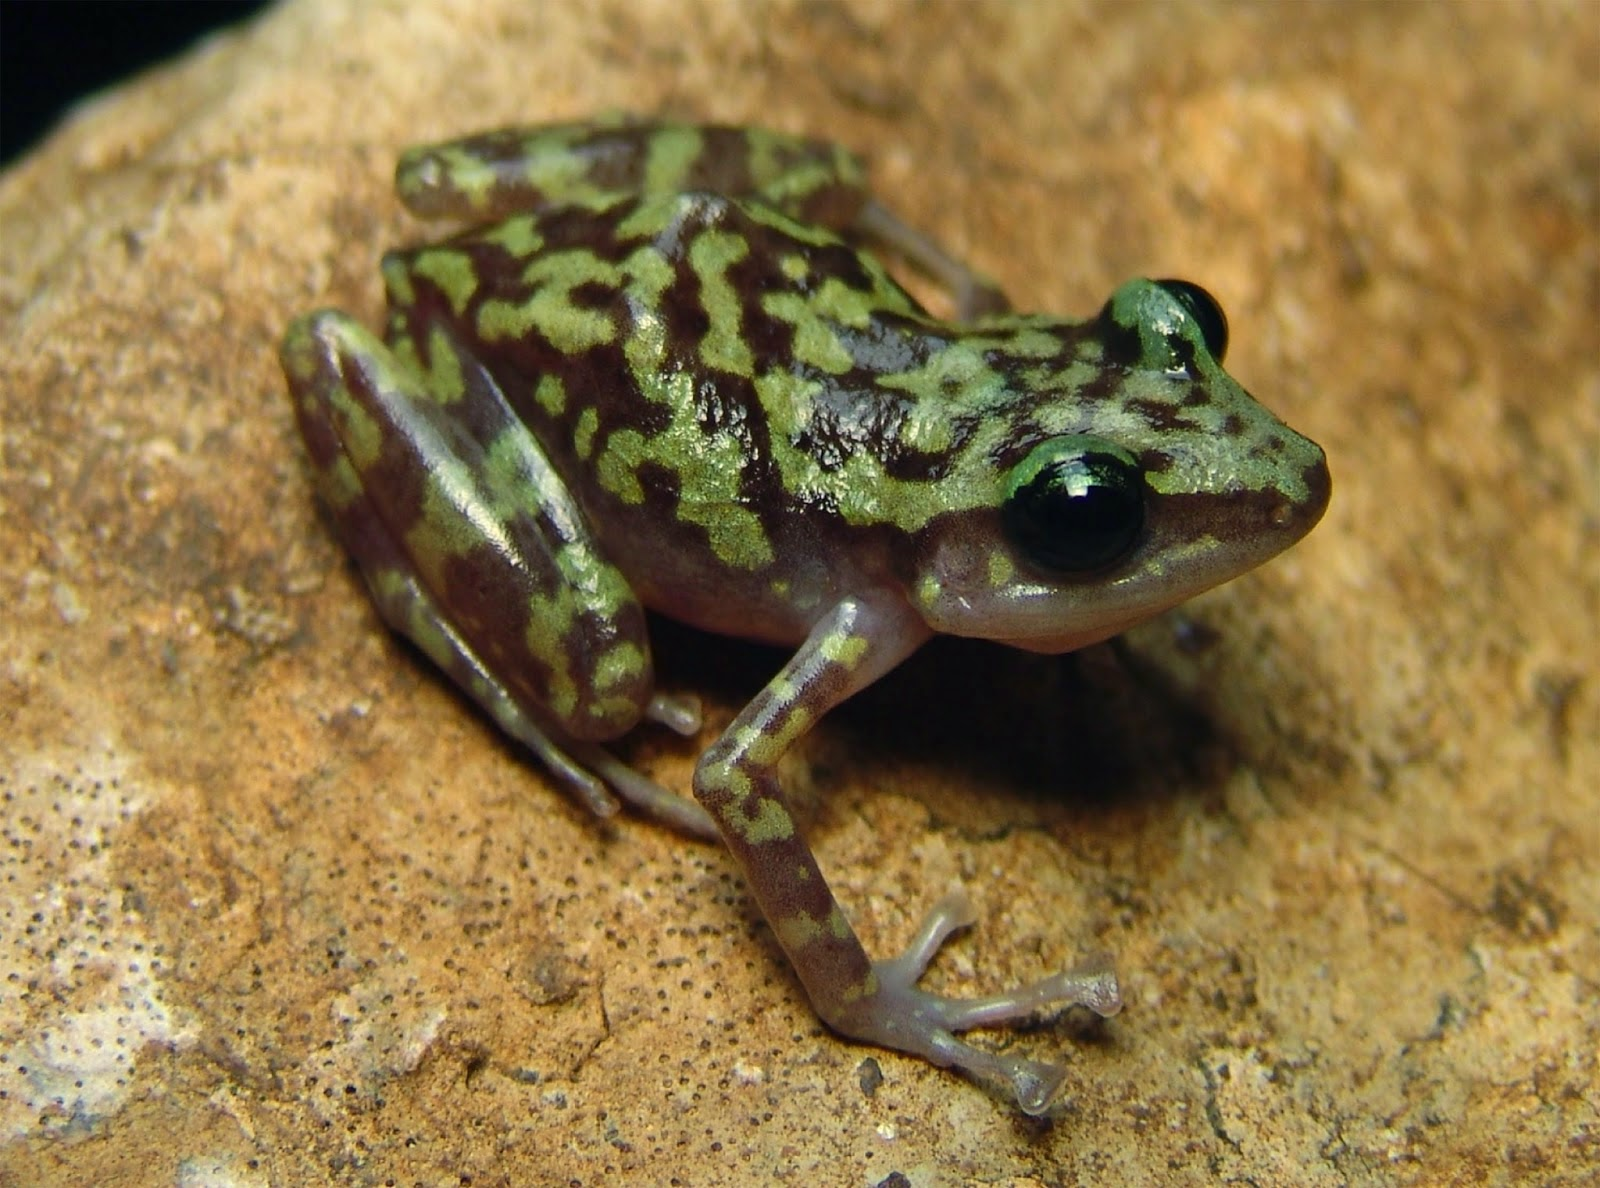 http://sciencythoughts.blogspot.co.uk/2015/04/robber-frogs-from-mountains-of-western.html